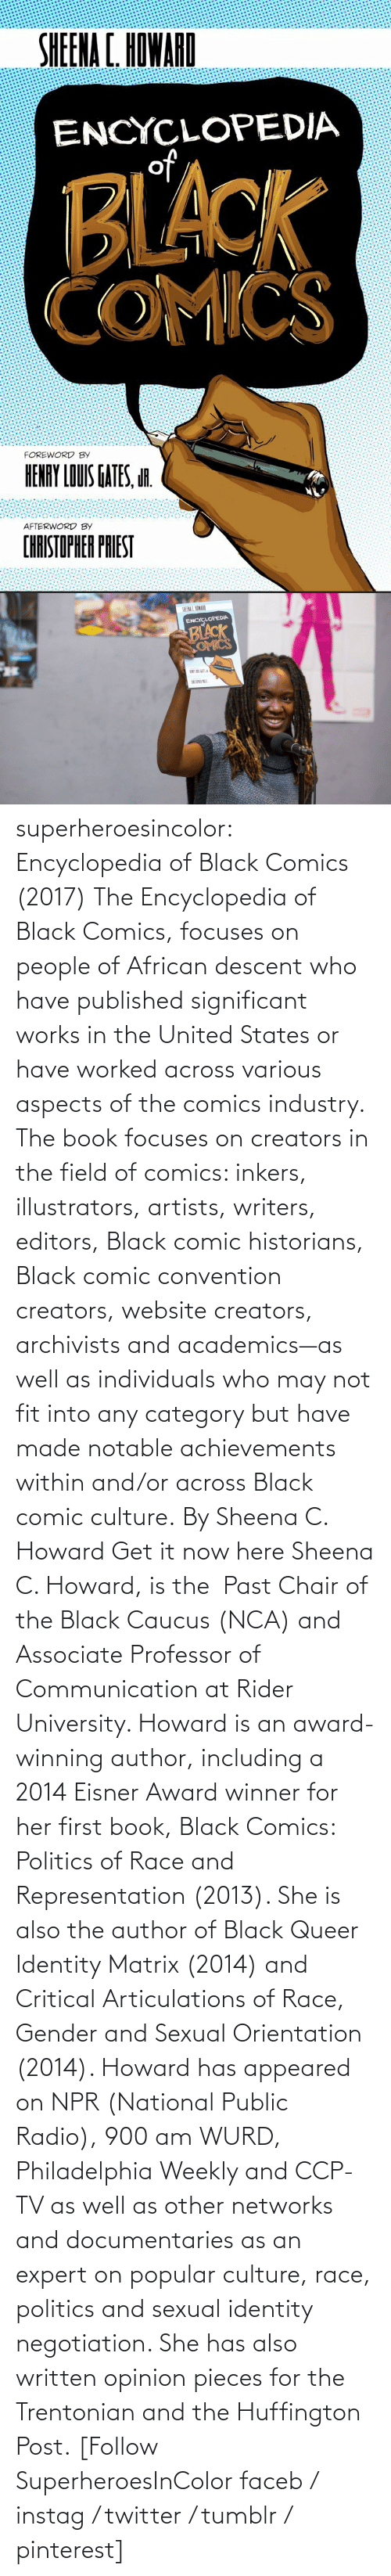 she: superheroesincolor: Encyclopedia of Black Comics (2017) The Encyclopedia of Black Comics, focuses on people of African descent who have published significant works in the United States or have worked across various aspects of the comics industry.  The book focuses on creators in the field of comics: inkers, illustrators, artists, writers, editors, Black comic historians, Black comic convention creators, website creators, archivists and academics—as well as individuals who may not fit into any category but have made notable achievements within and/or across Black comic culture. By Sheena C. Howard Get it now here  Sheena C. Howard, is the  Past Chair of the Black Caucus (NCA) and Associate Professor of Communication at Rider University. Howard is an award-winning author, including a 2014 Eisner Award winner for her first book, Black Comics: Politics of Race and Representation (2013). She is also the author of Black Queer Identity Matrix (2014) and Critical Articulations of Race, Gender and Sexual Orientation (2014). Howard has appeared on NPR (National Public Radio), 900 am WURD, Philadelphia Weekly and CCP-TV as well as other networks and documentaries as an expert on popular culture, race, politics and sexual identity negotiation. She has also written opinion pieces for the Trentonian and the Huffington Post.   [Follow SuperheroesInColor faceb / instag / twitter / tumblr / pinterest]